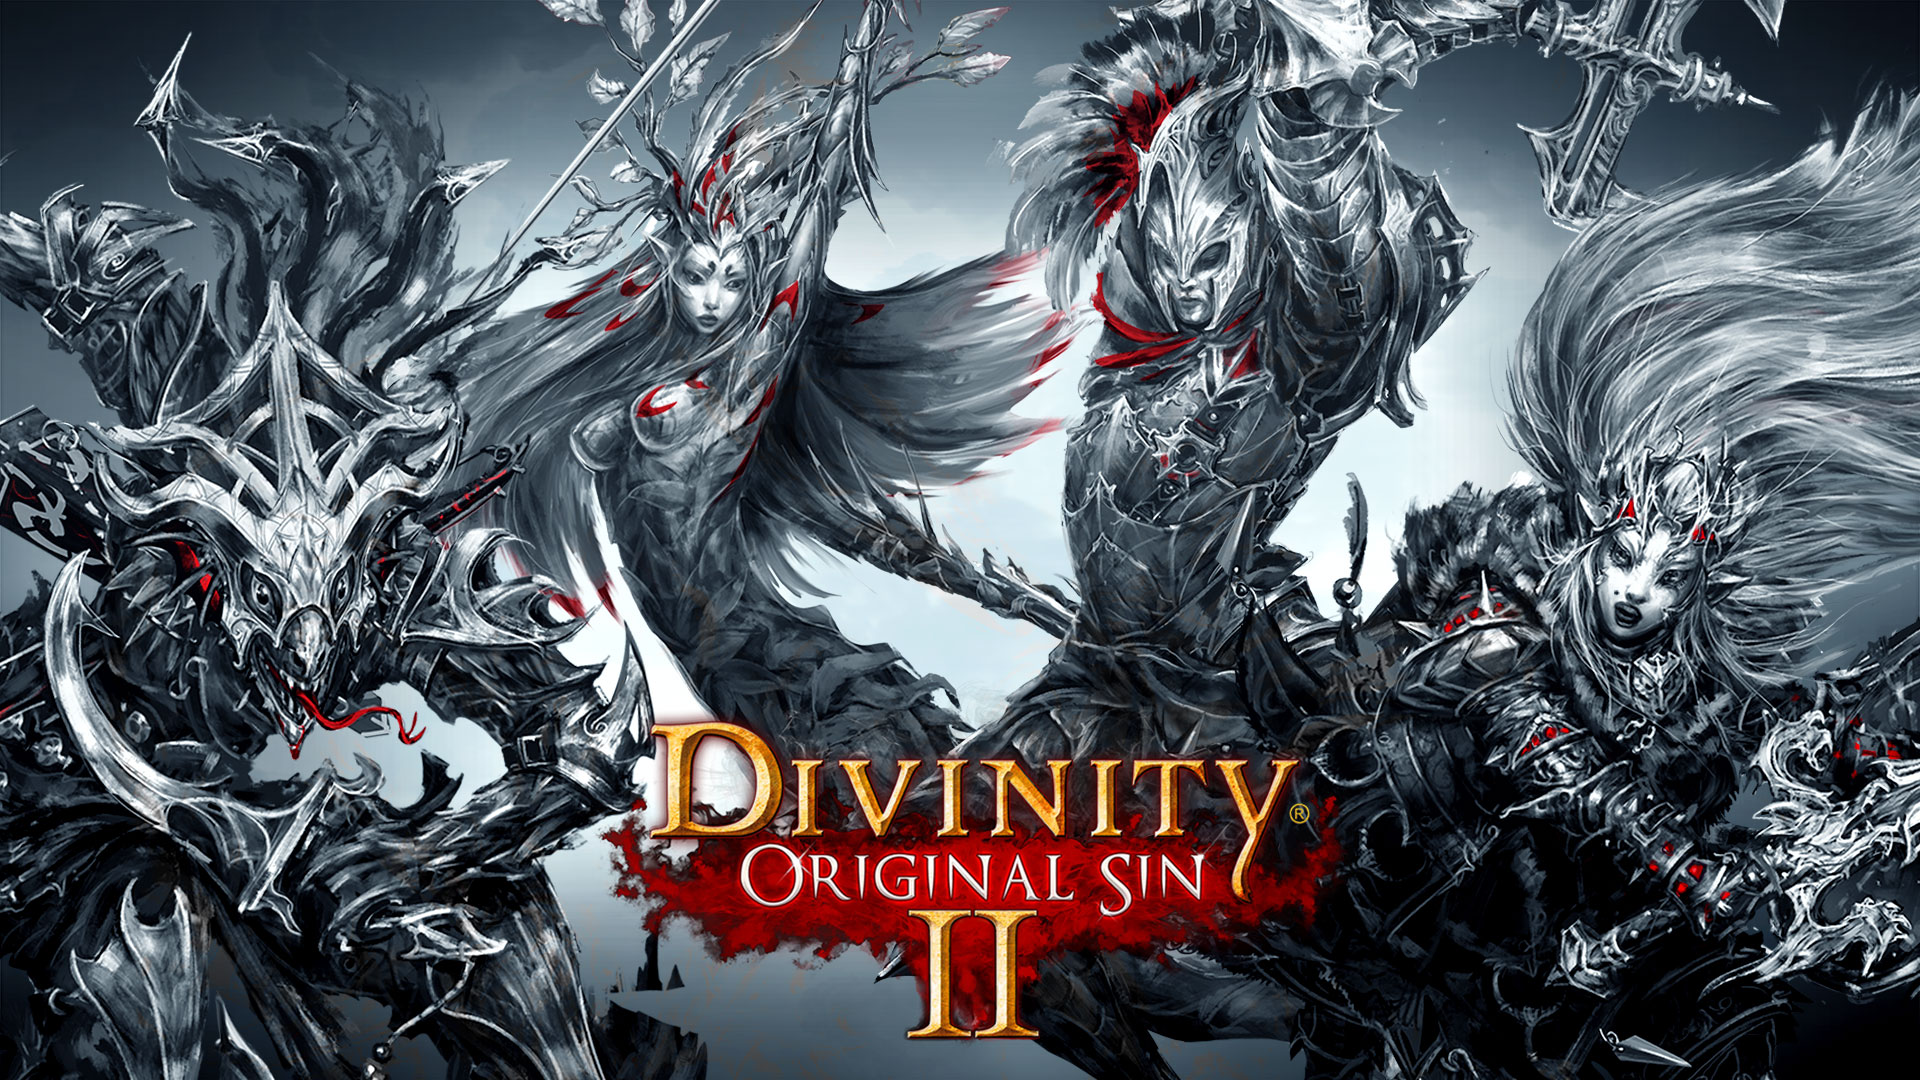 Divinity: Original Sin II telecharger gratuit de PC et Torrent